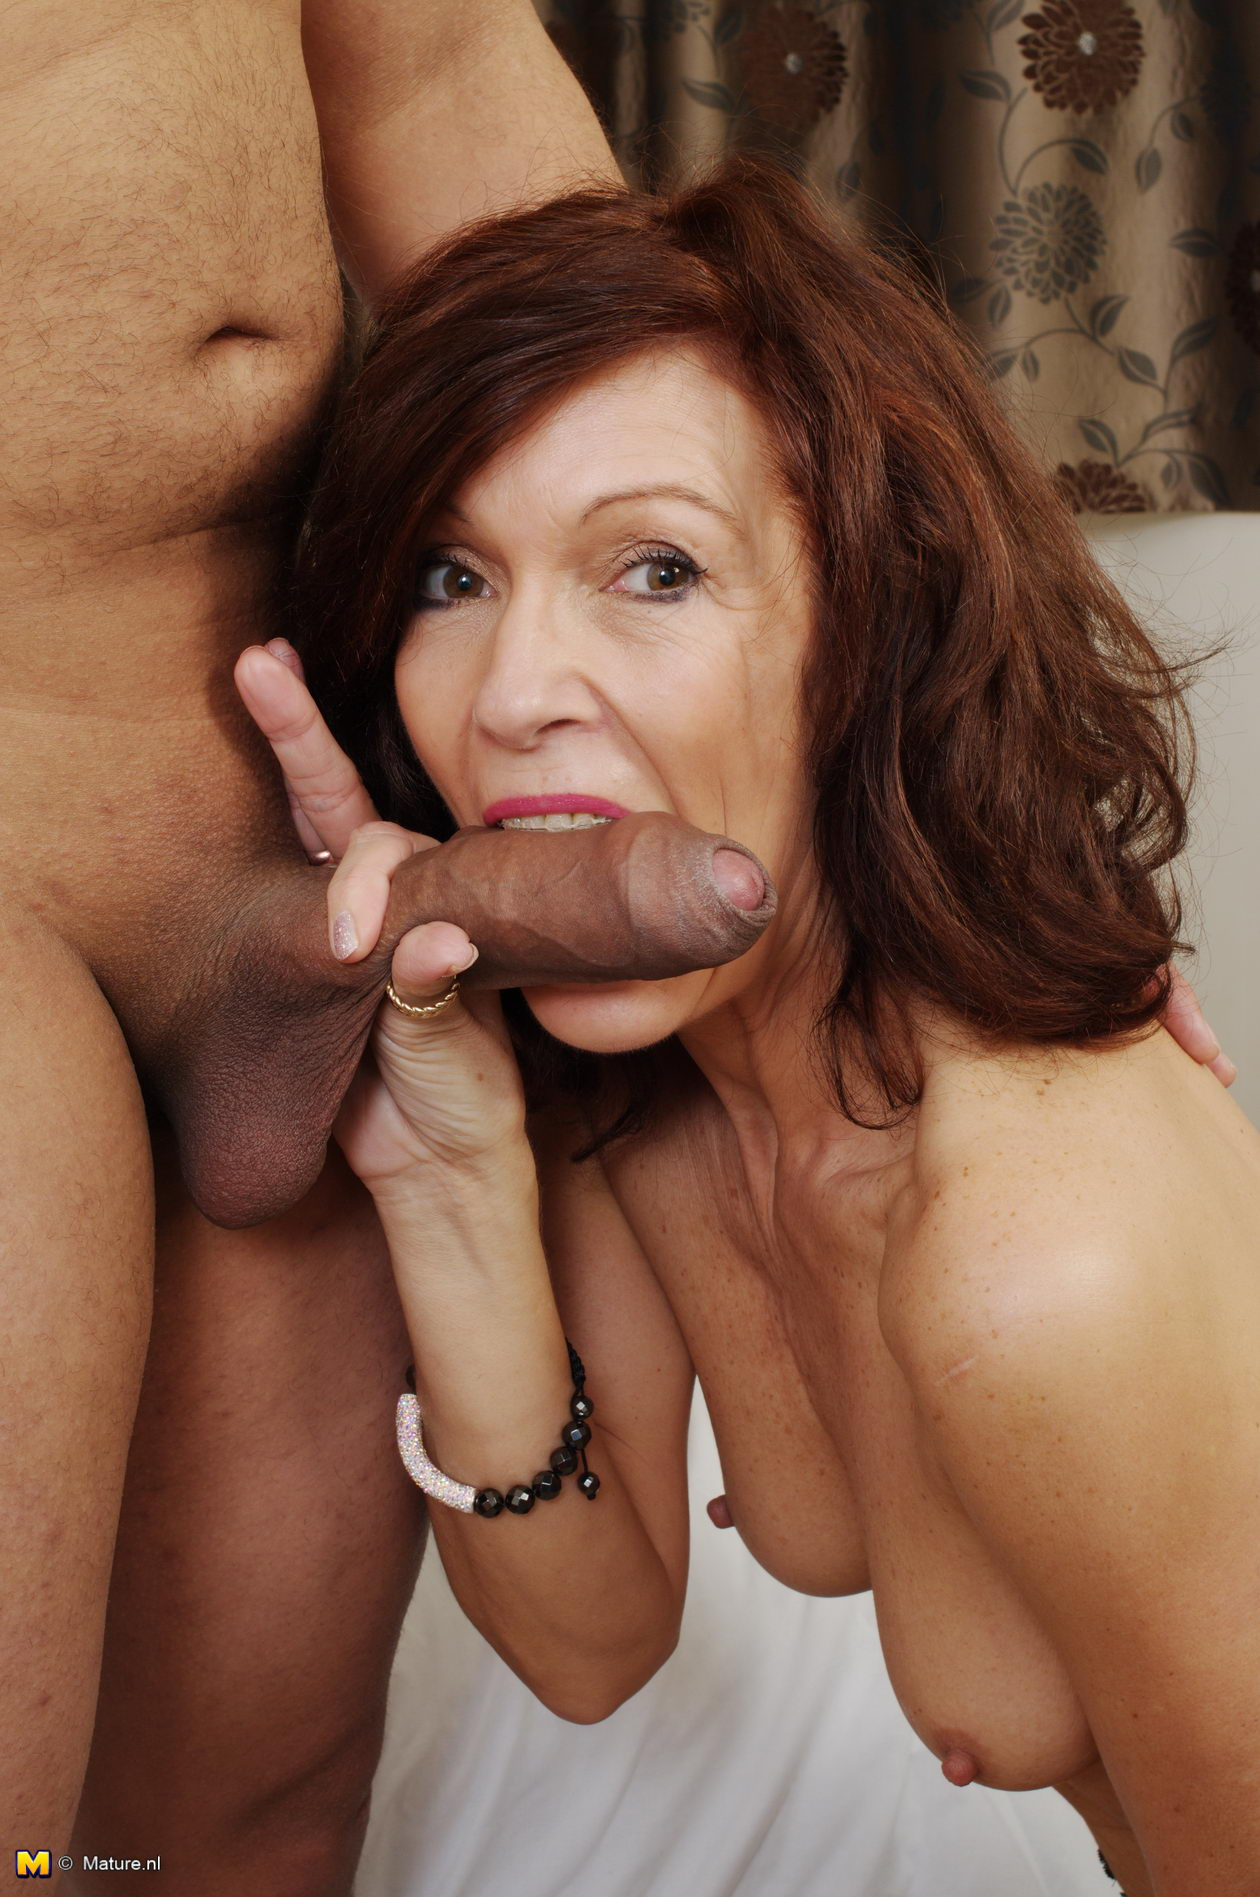 Amusing Milf cougar sucking cock join told